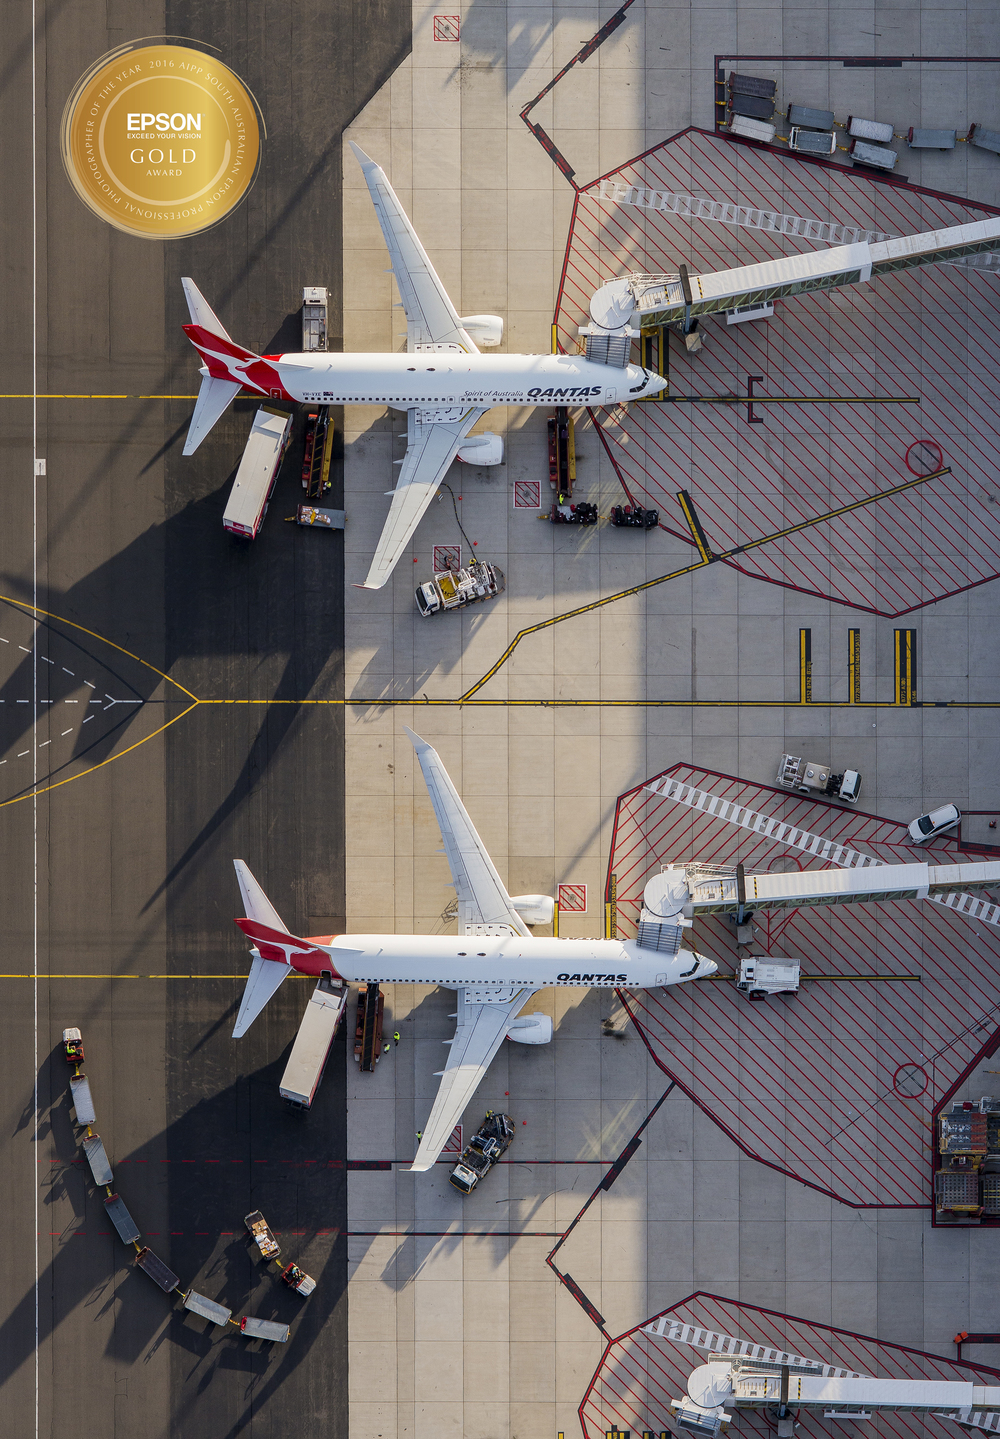 An aerial charter for Adelaide Airport at dusk to capture long shadows and depth around the airport precinct - I love the way the baggage train mimics the strong paint curves leading from the front of the two Qantas aircraft. This one really shows off the power combination of the Nikon D800 and 70-200mm VR2 lens that I usually use for aerial work, you can make out the rivets in the wings when you zoom right in! Processed in Lightroom and Photoshop.